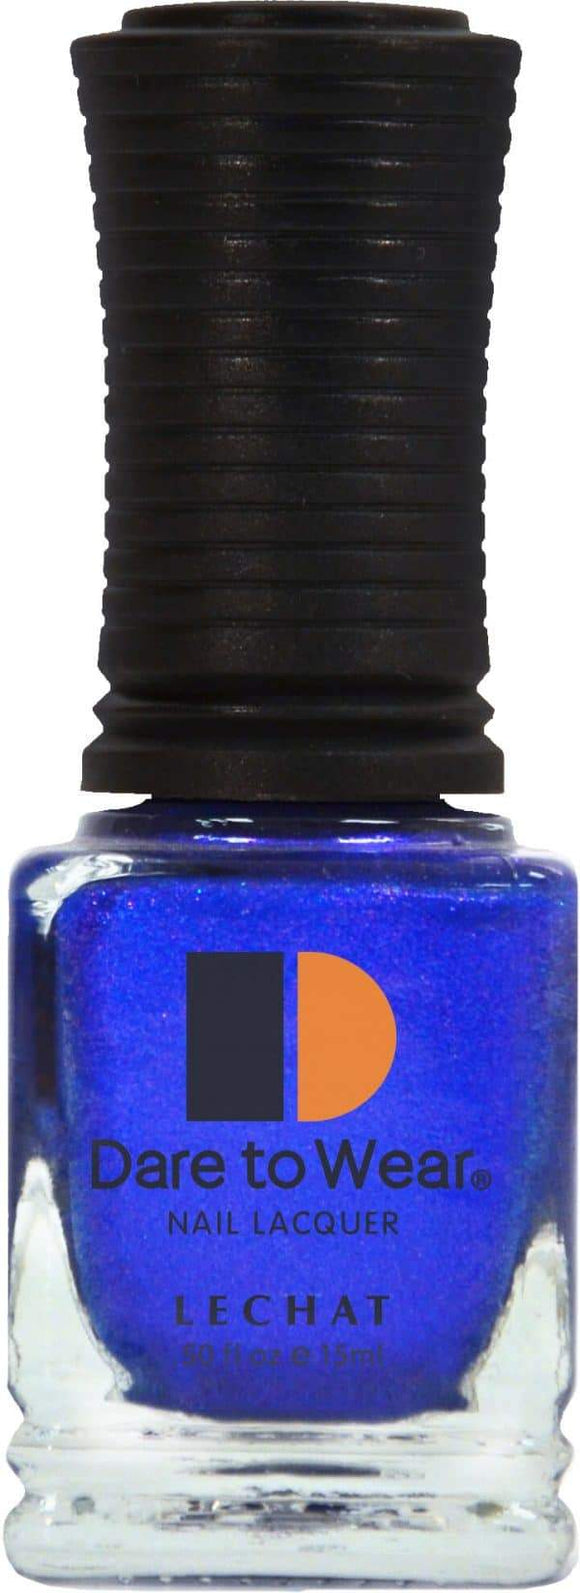 Lechat Nail Lacquers DW84 Starstruck